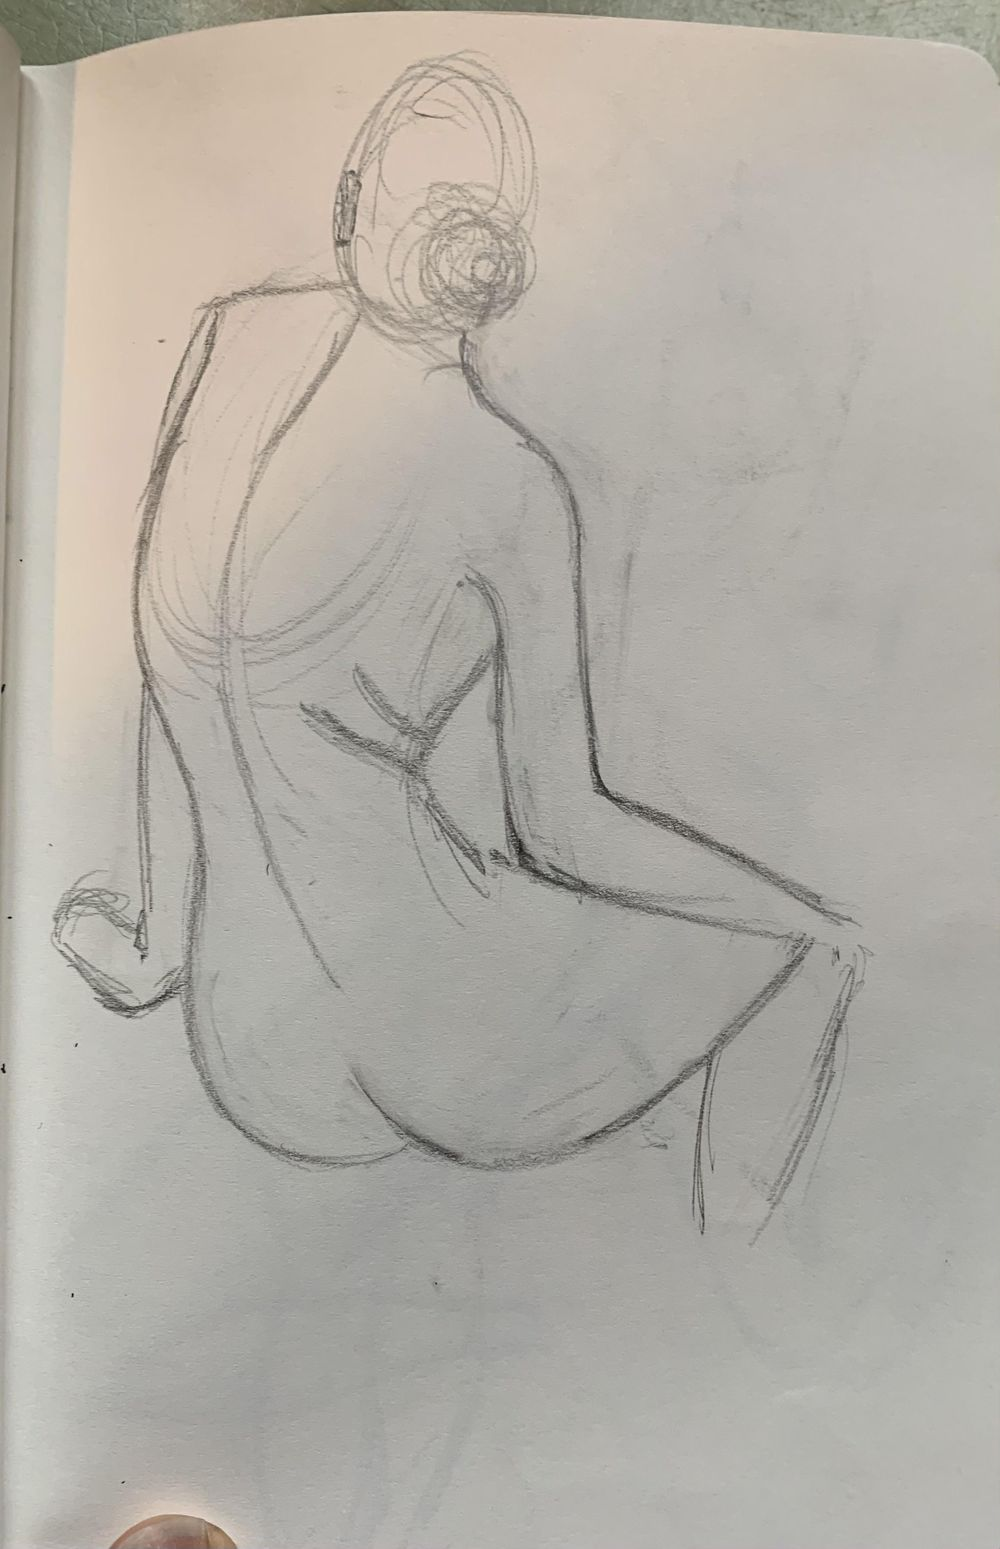 gesture - image 2 - student project